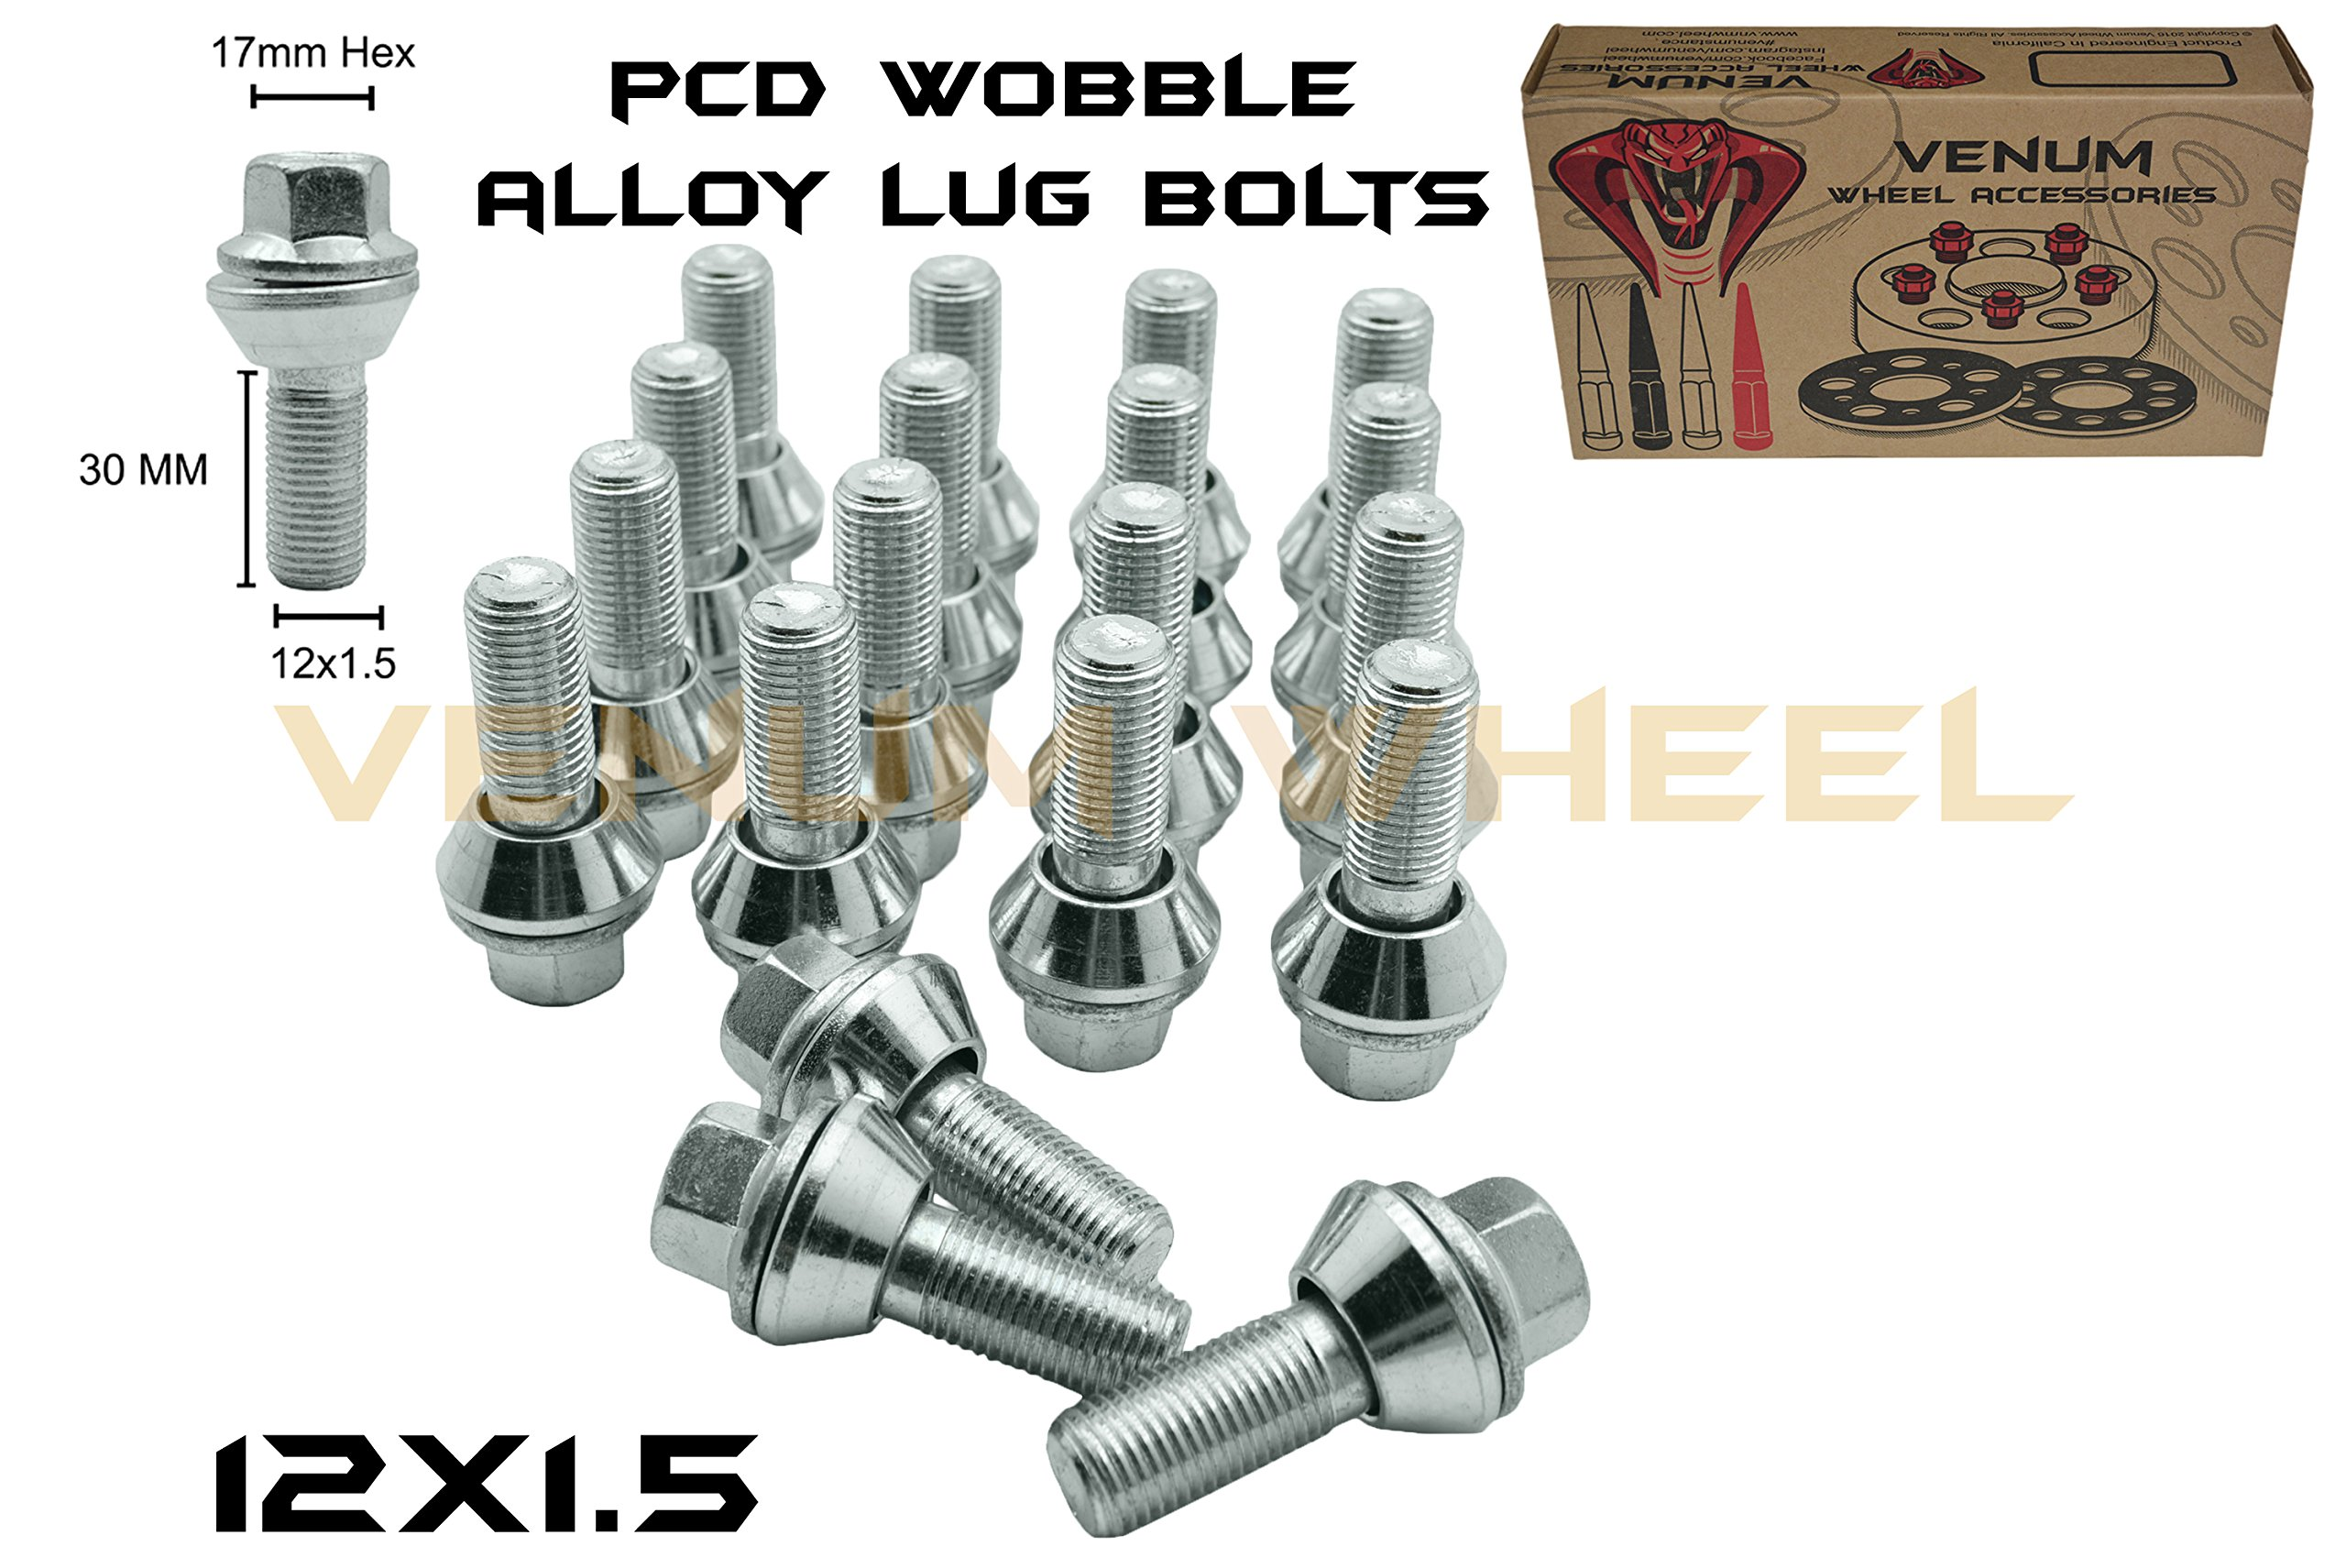 20pc 17mm Hex Zinc PCD Variation Lug Bolts M12x1.5 (30mm) Shank 1.2 Radius Fits on 5x114 Wheels to Adapt 5x112 wheels U.S by Venum wheel accessories